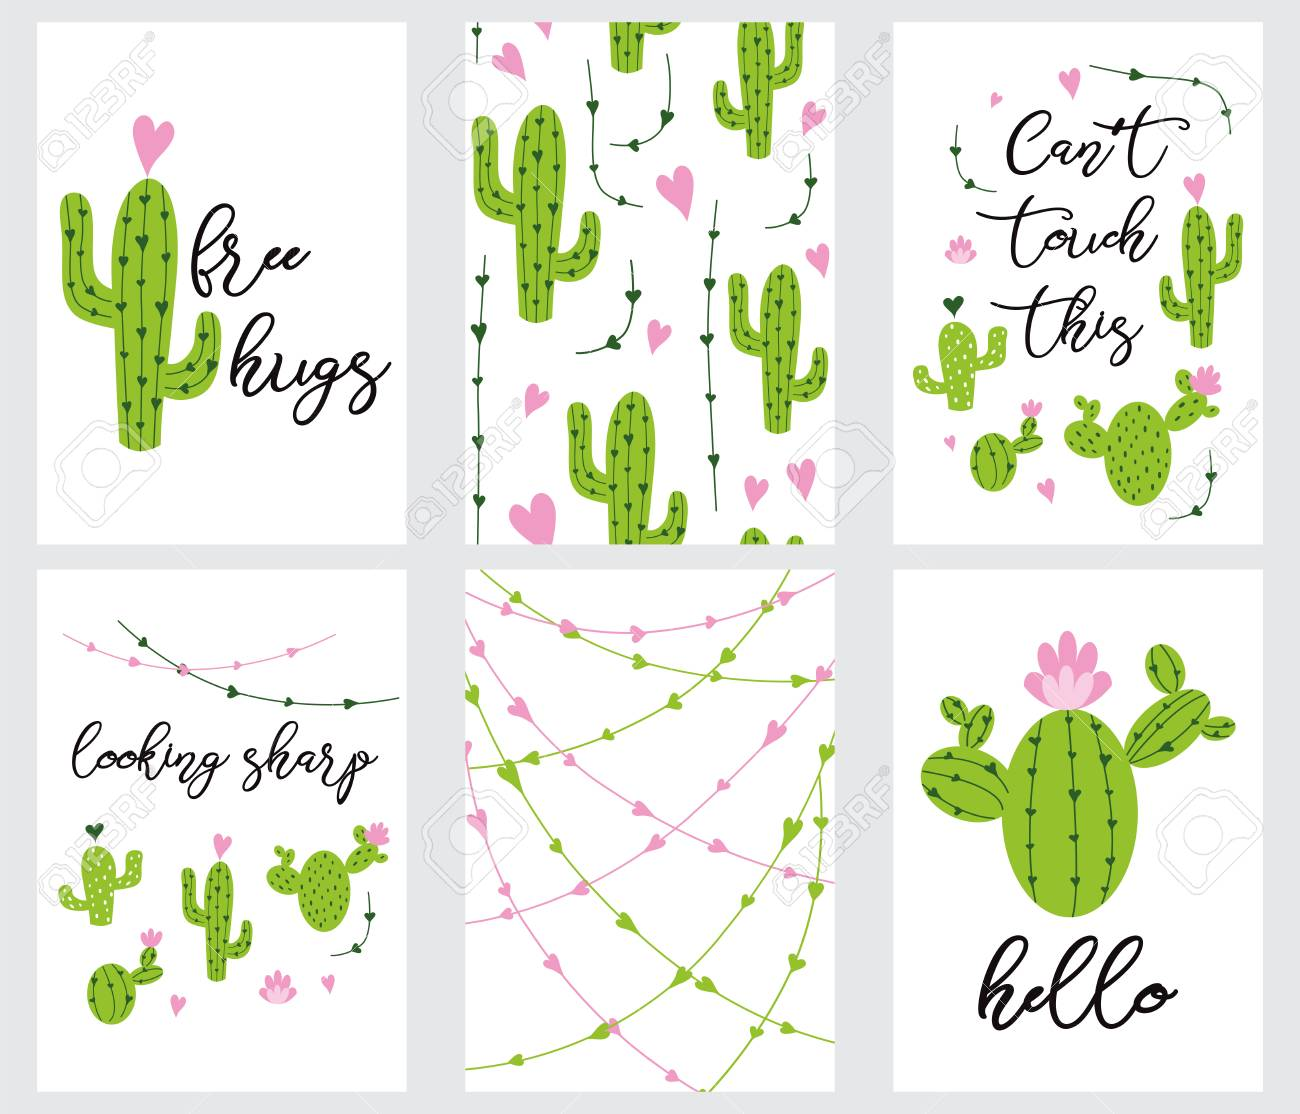 photograph regarding Cute Gift Tags Printable named Fixed lovely geared up-toward-retain the services of present tags with cactus Printable variety..